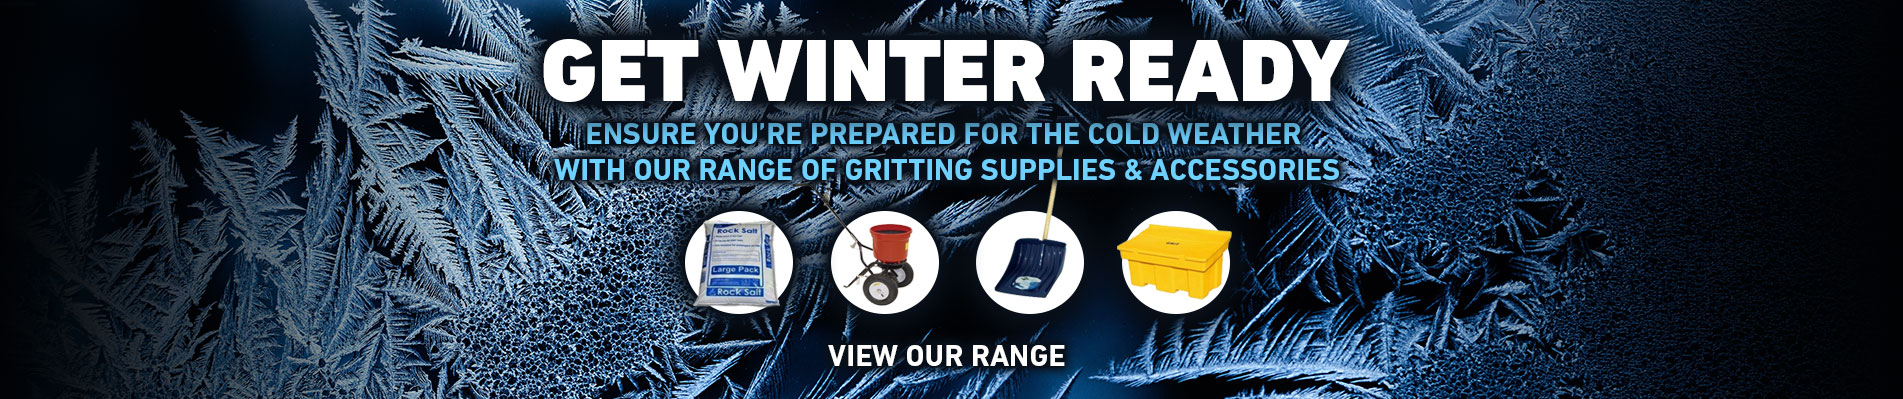 OUR RANGE OF GRITTING SUPPLIES